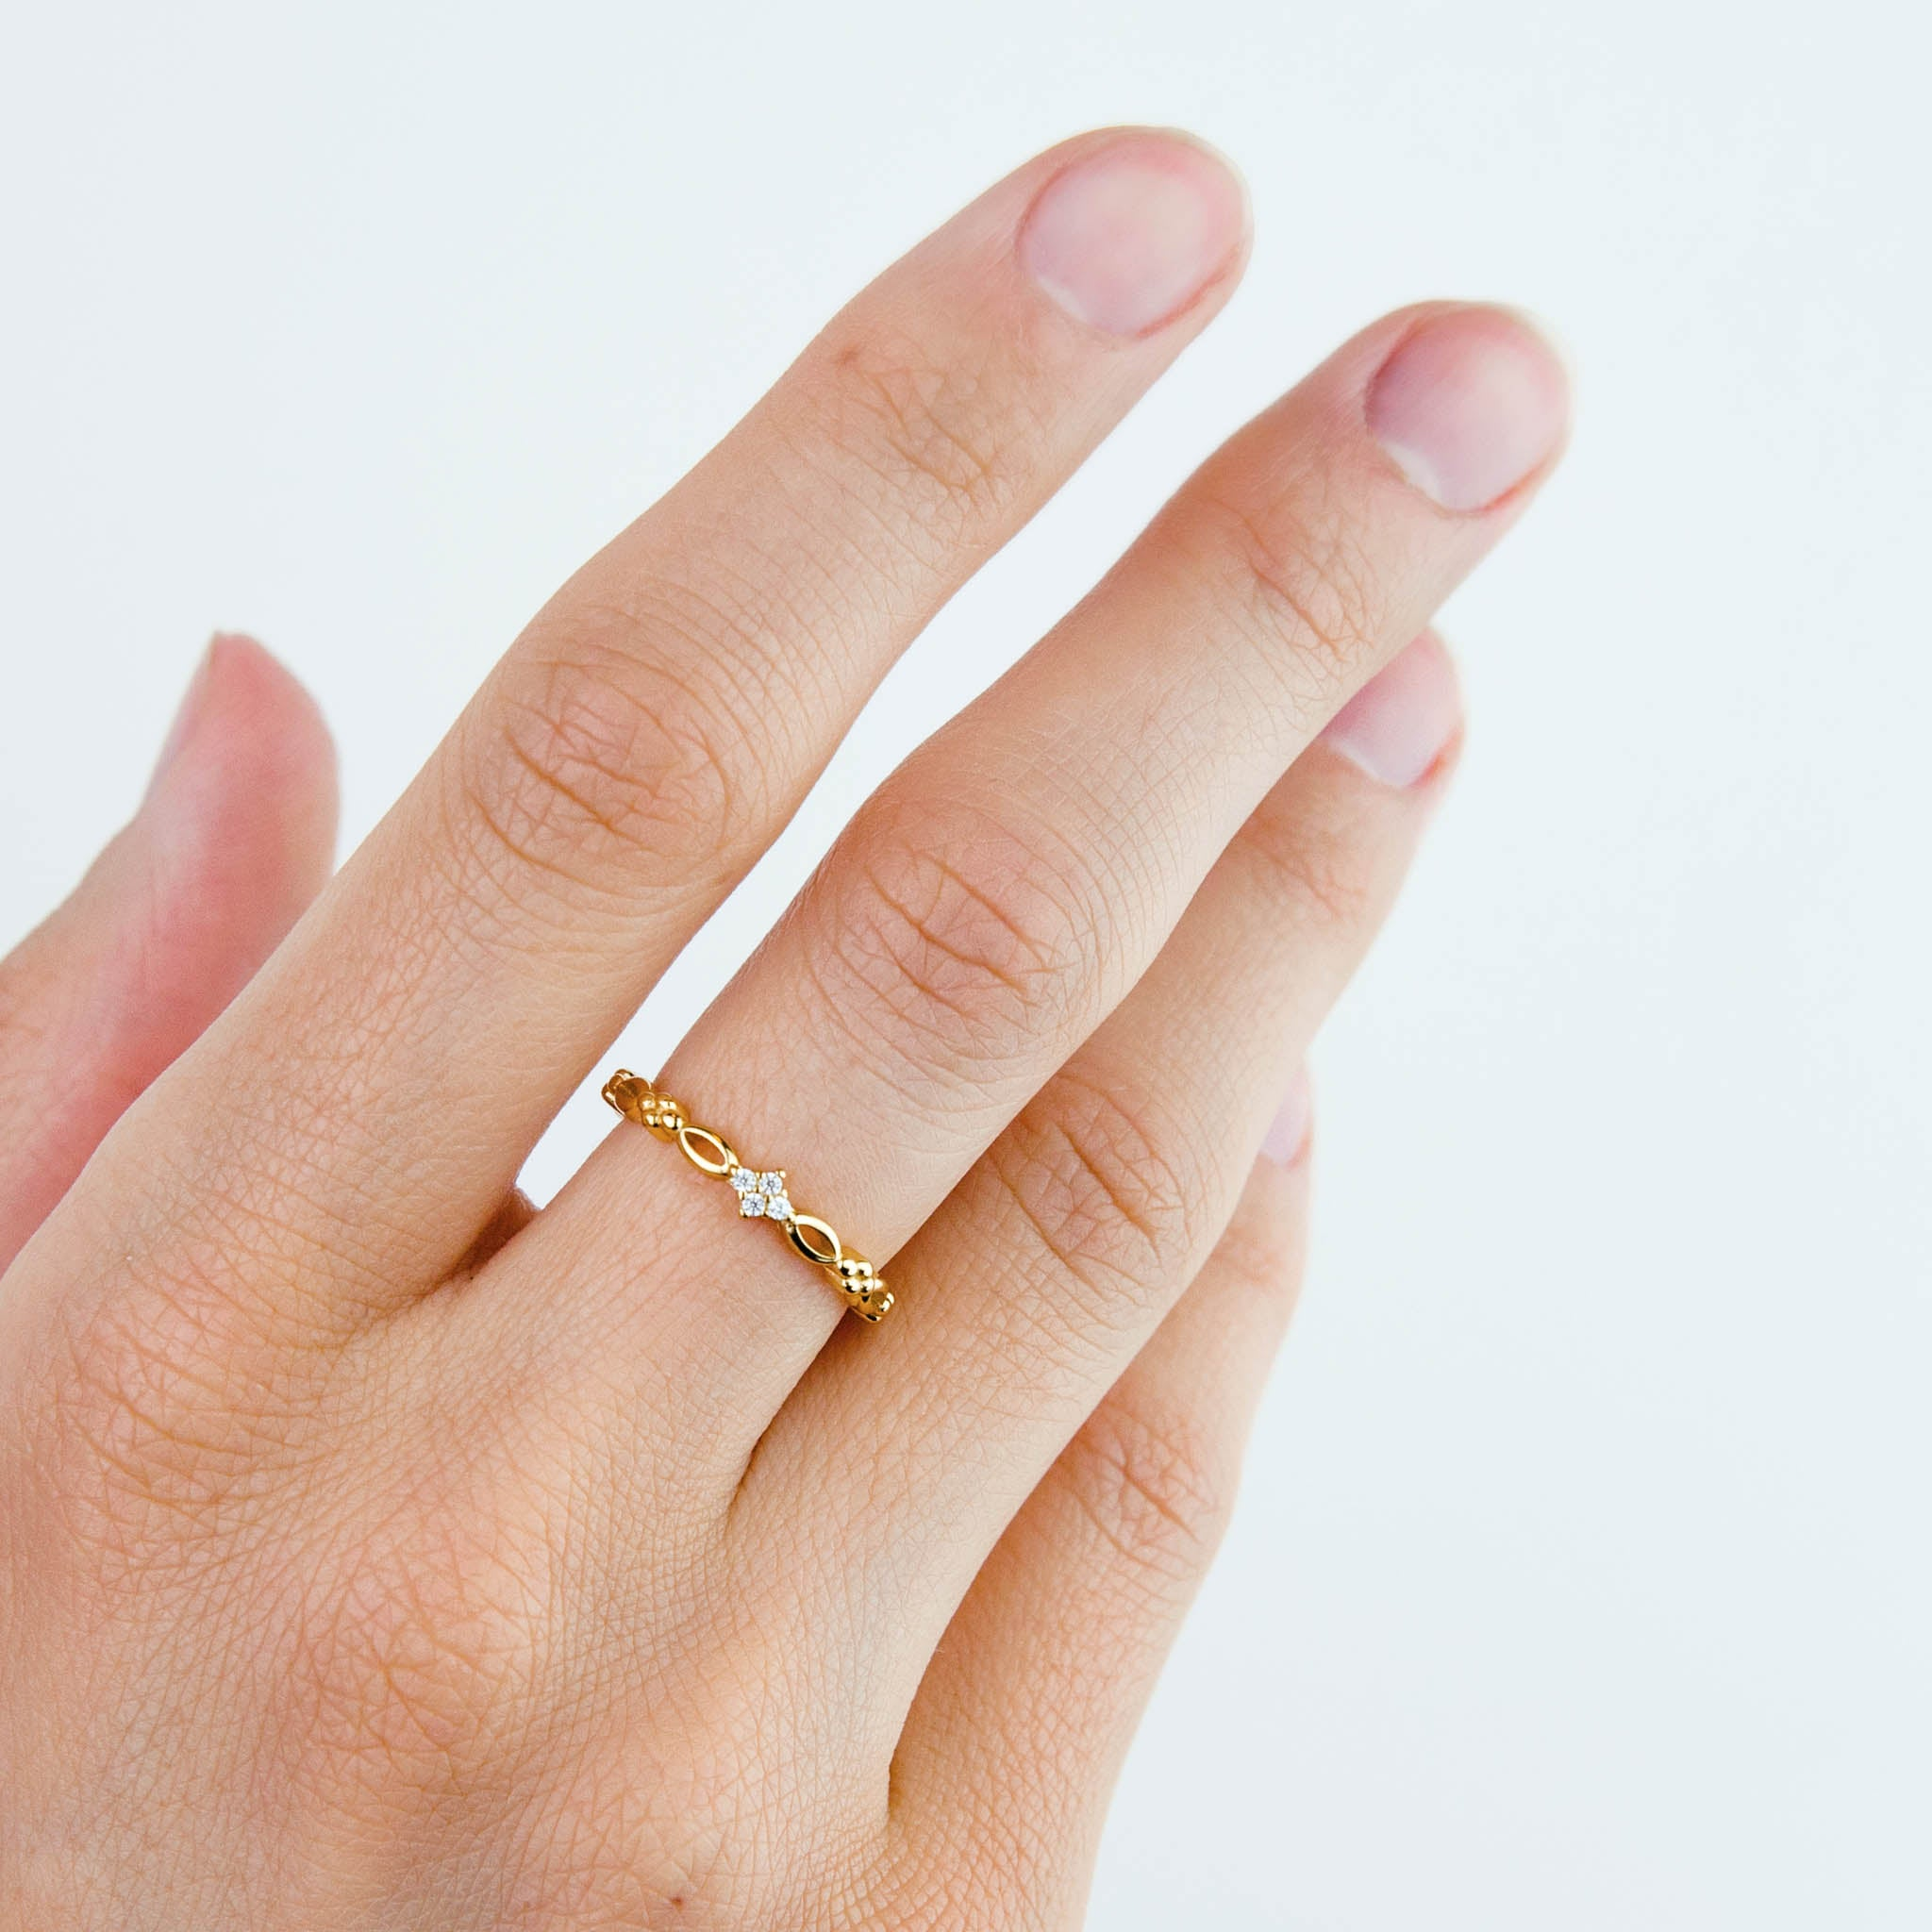 Gold Sparkly Arc Ring